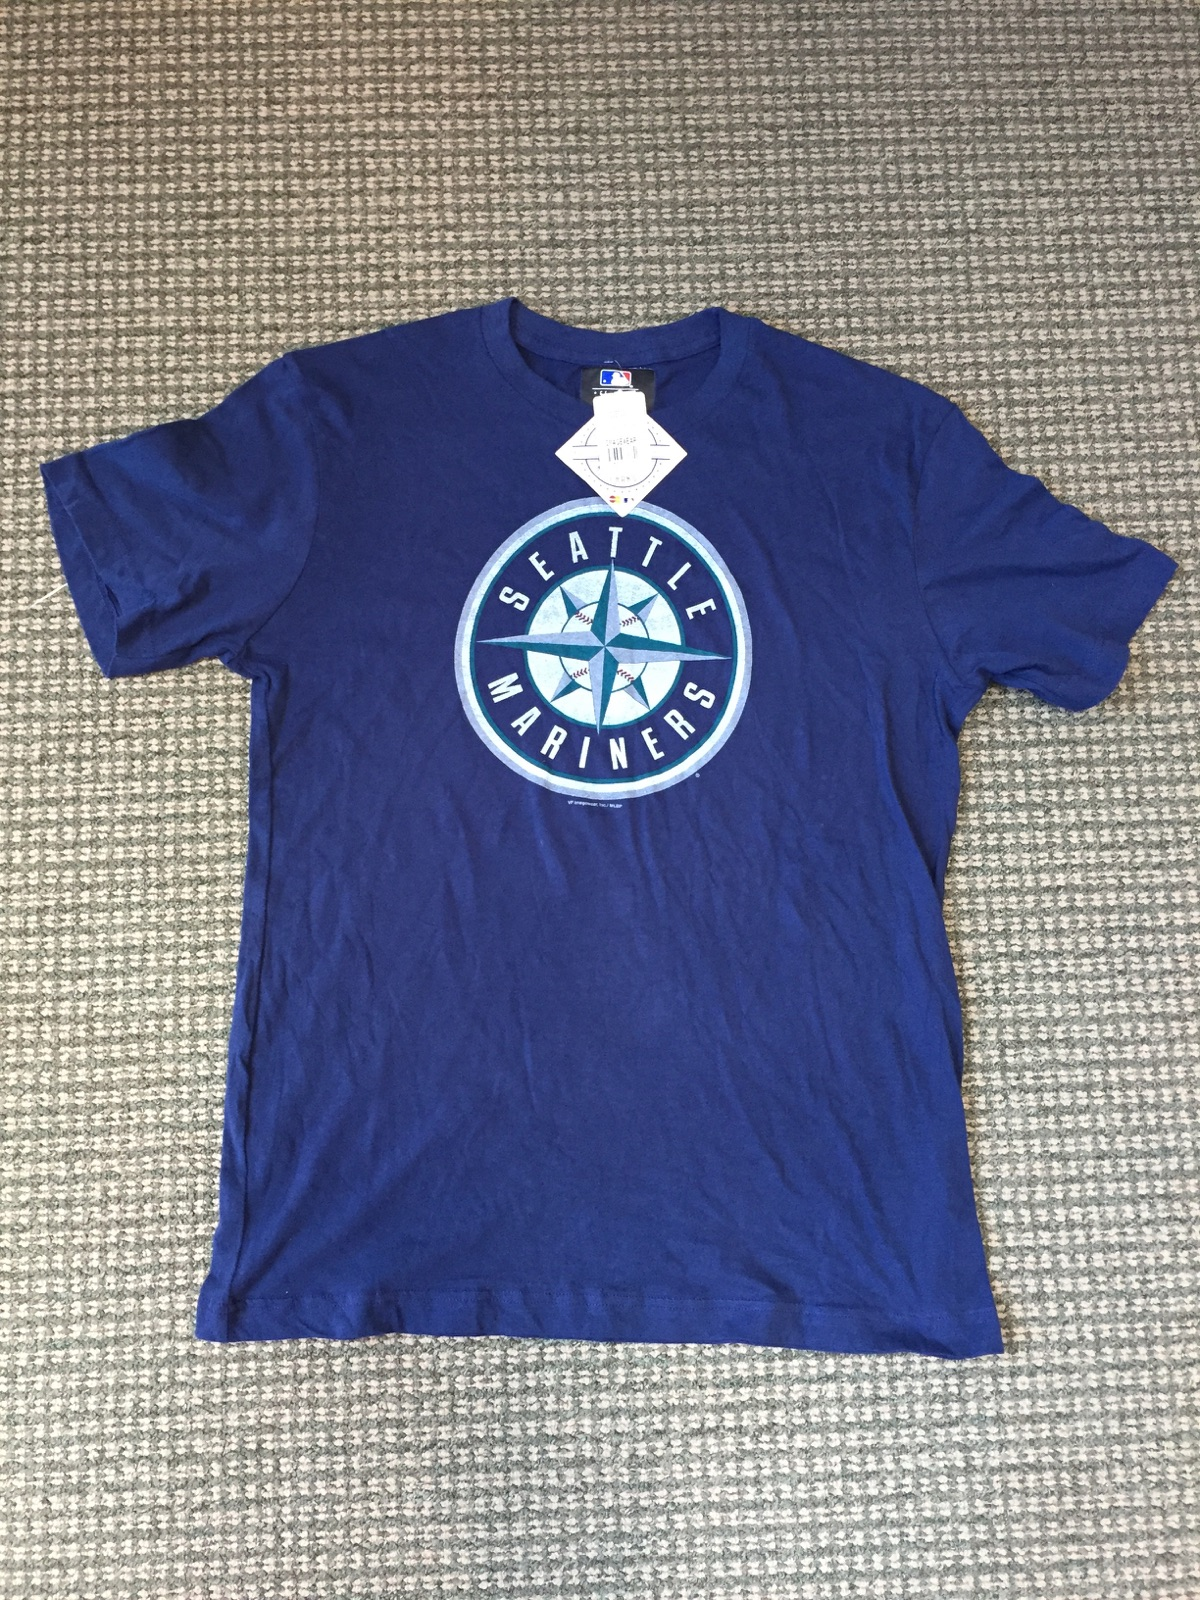 Mariners Tee Size Medium